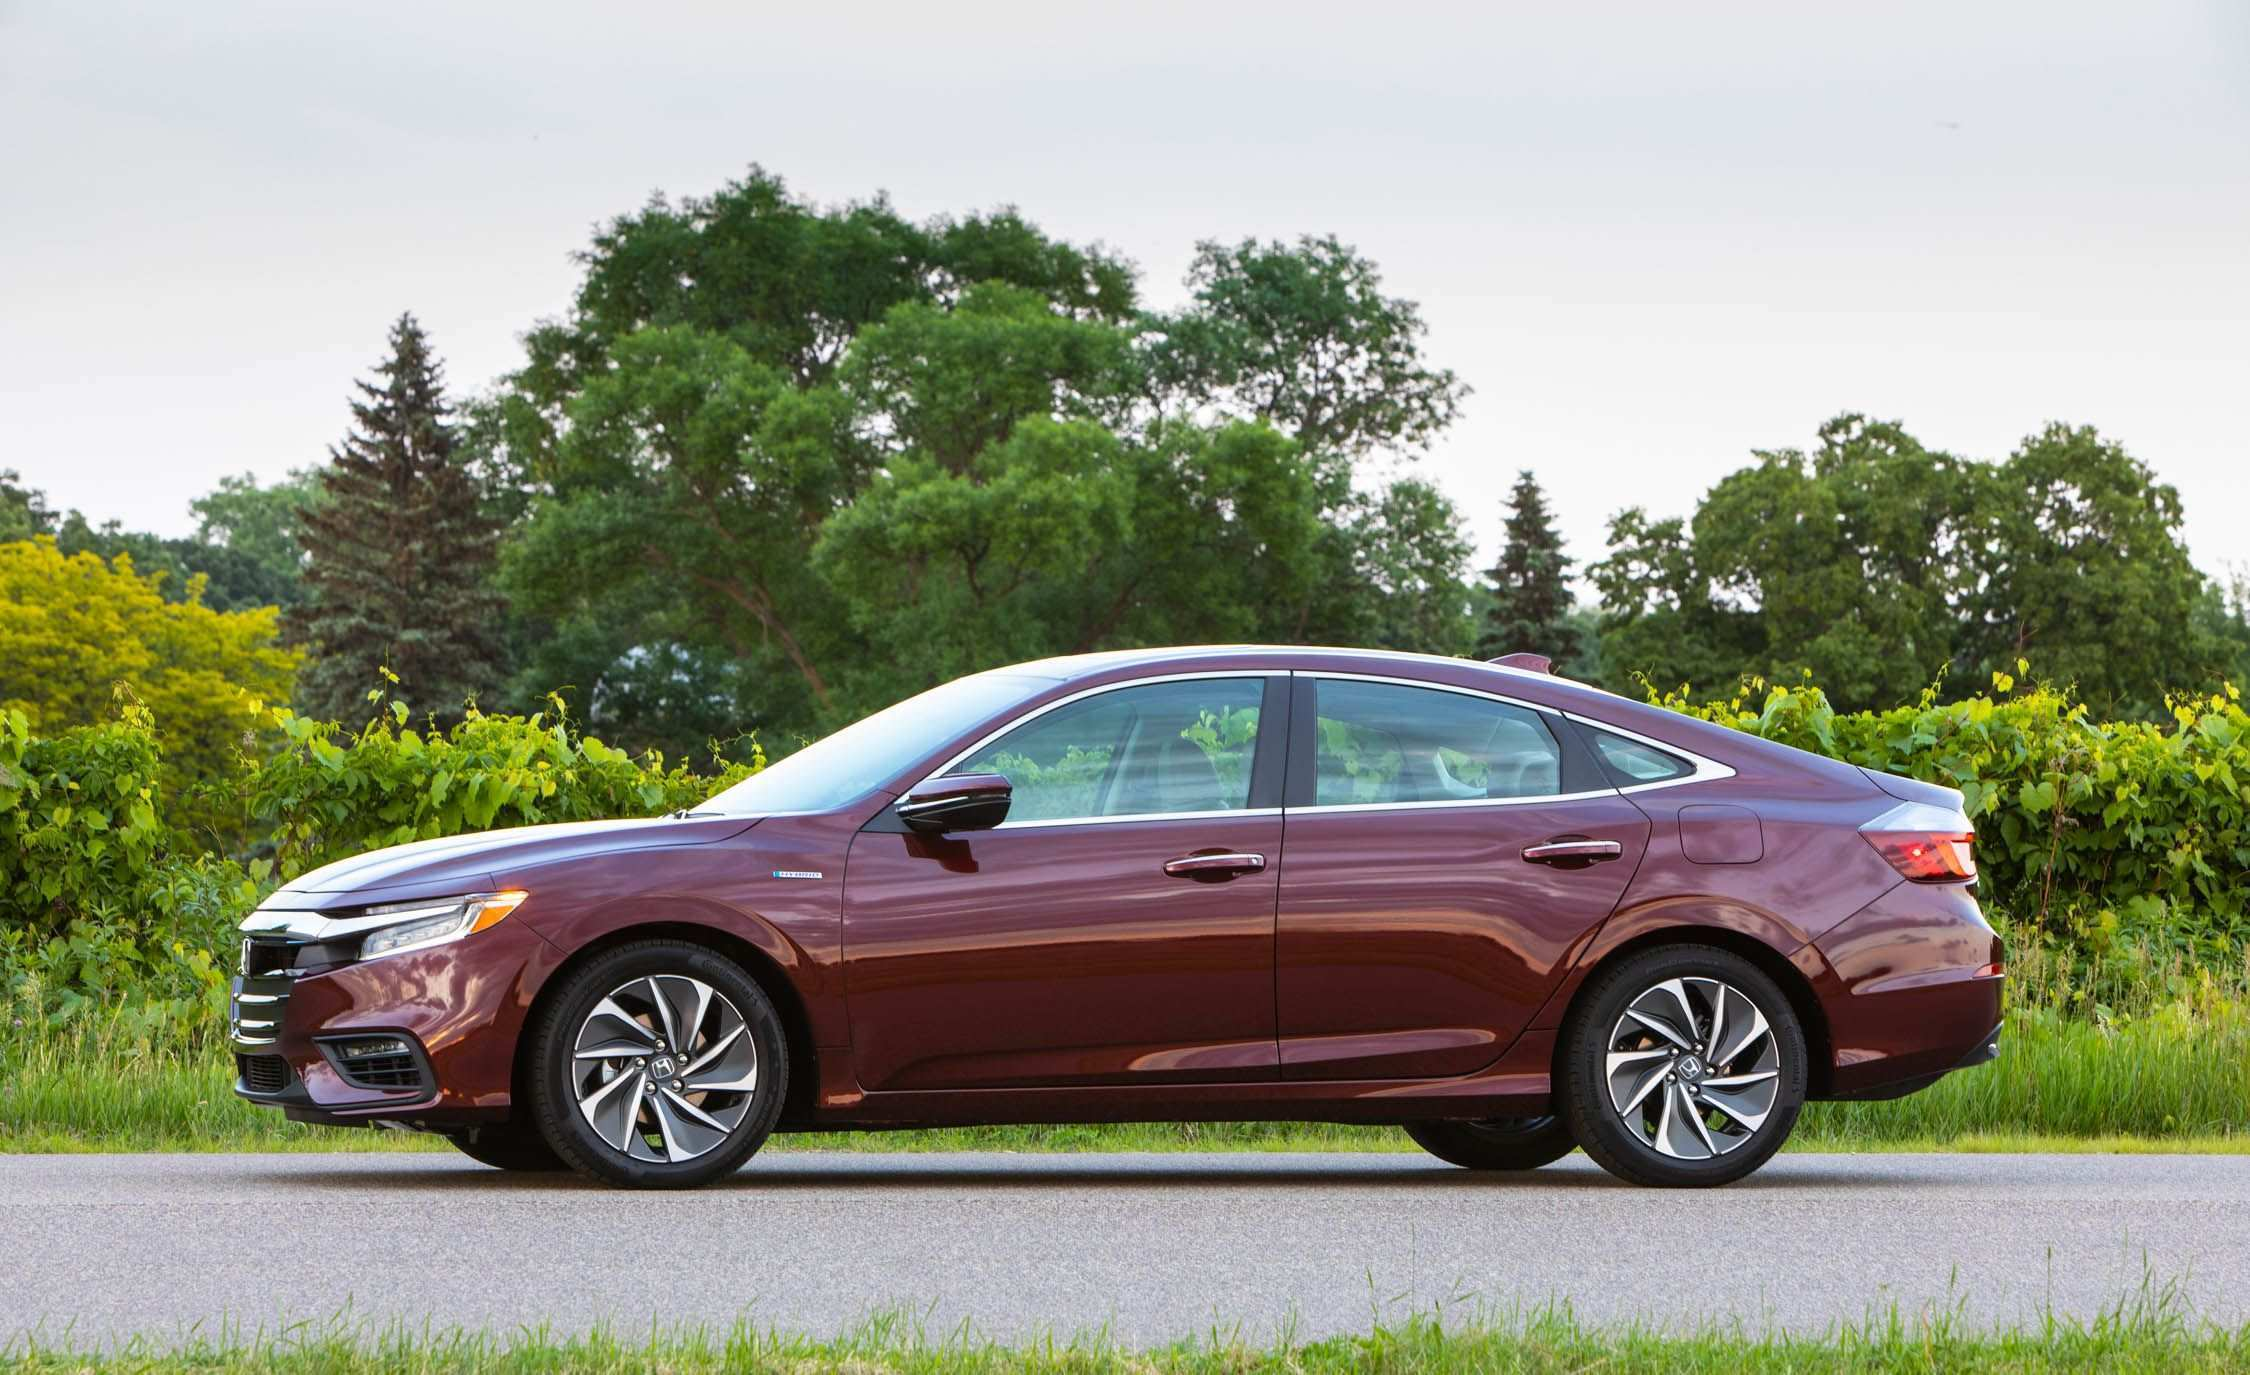 68 Concept of The Honda 2019 Insight Review Specs Specs with The Honda 2019 Insight Review Specs